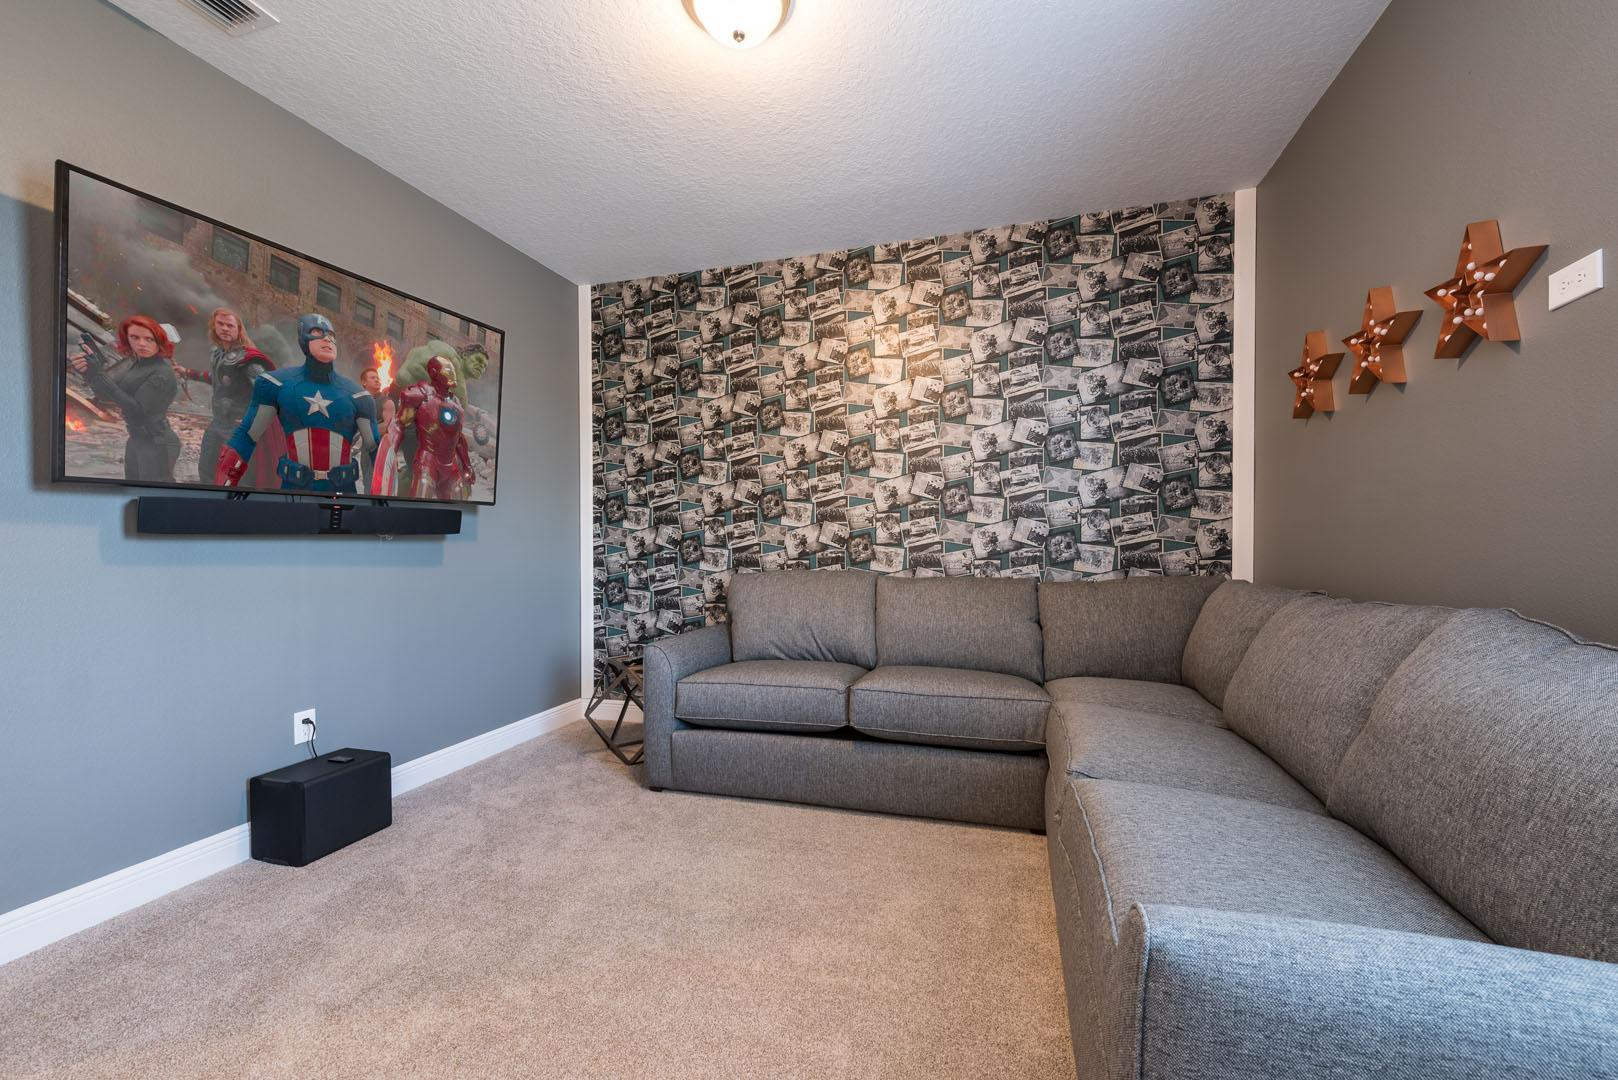 Property Image 1 - Lively Home with Loft Games near Disney